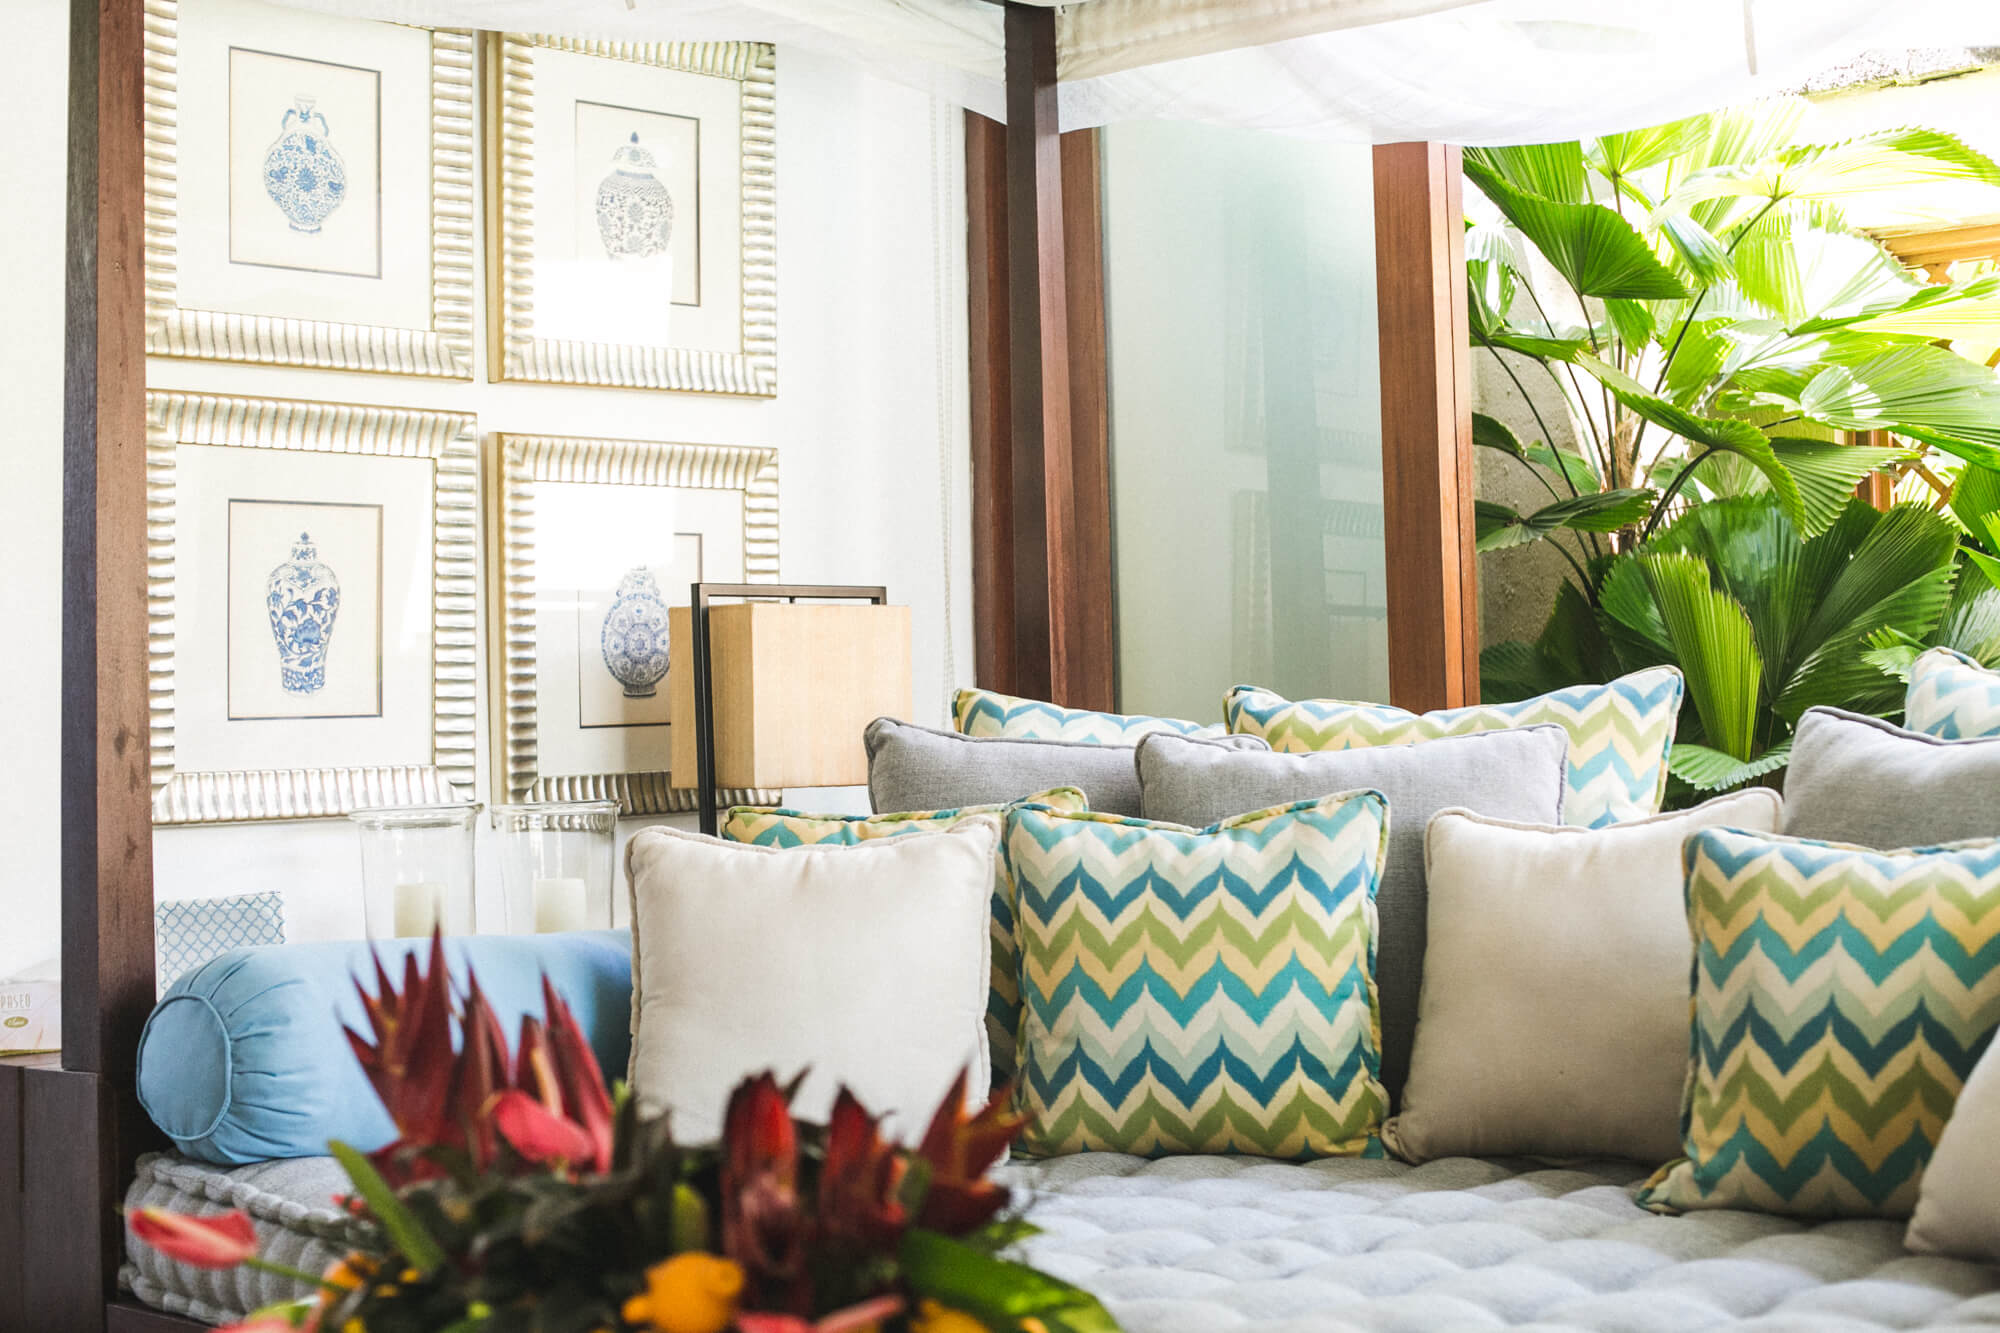 Another-room-details-picture-at-The-Place-Retreats-Bali